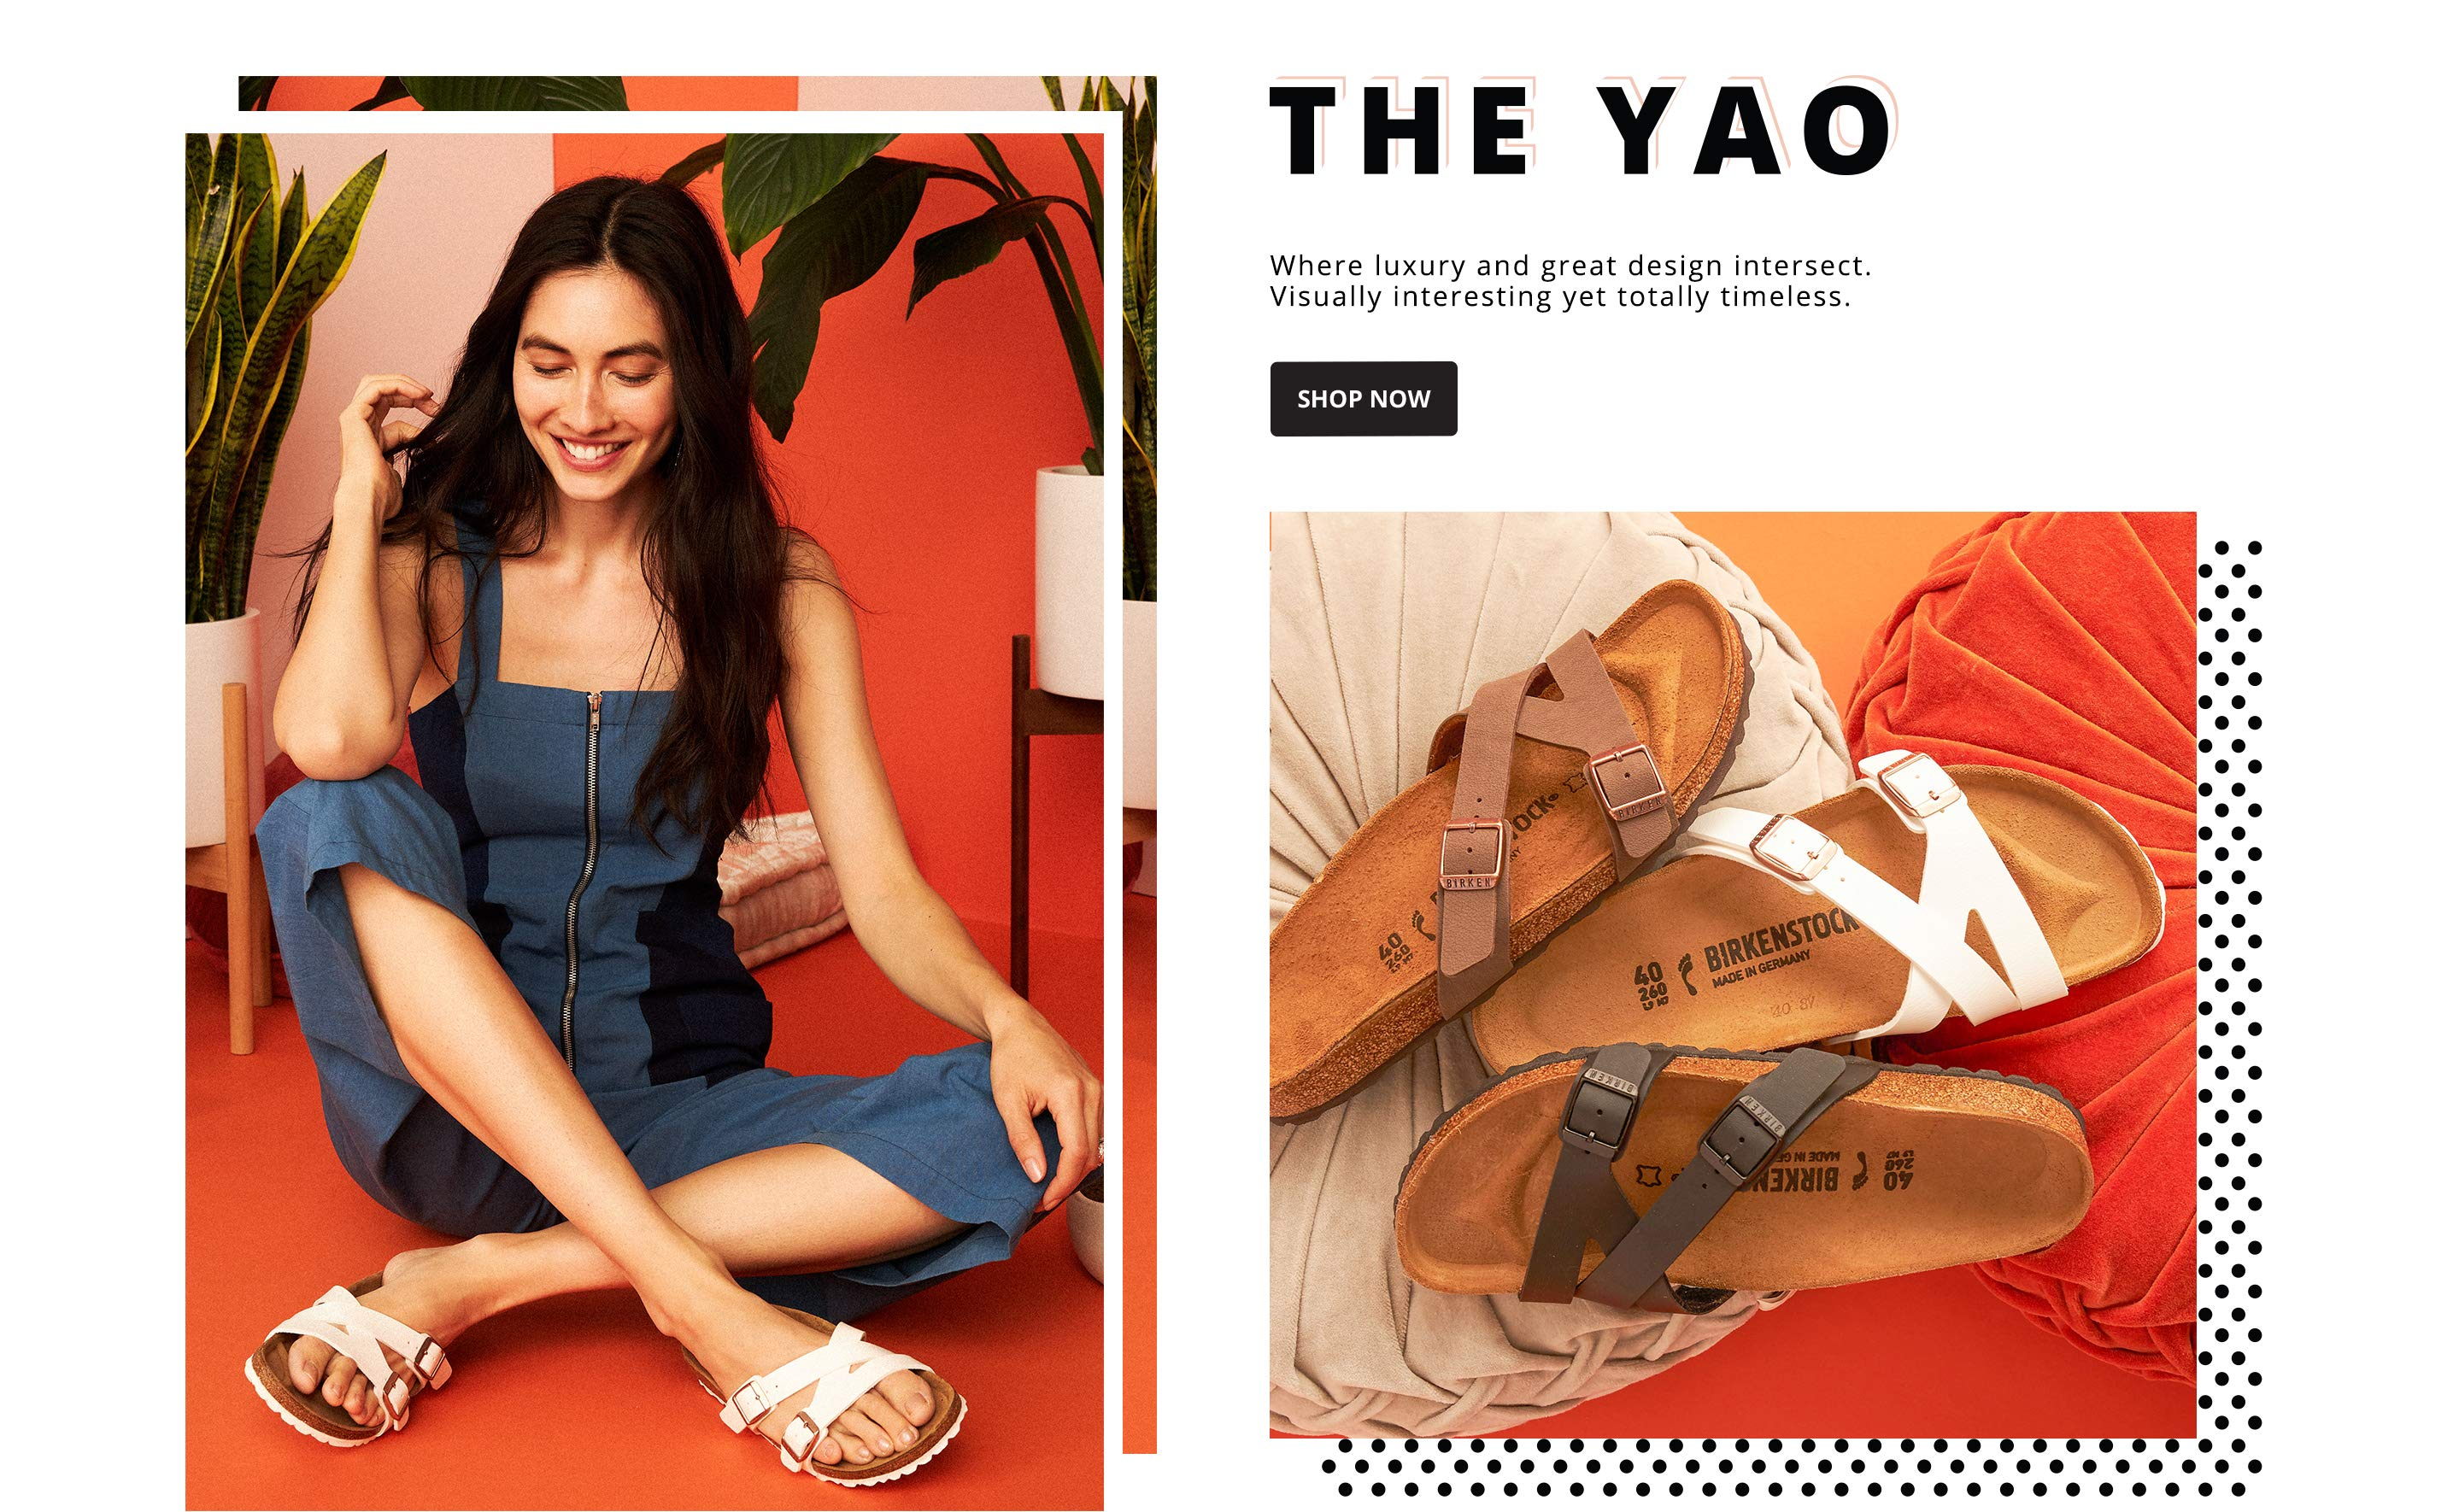 The Yao. Where luxury and great design intersect. Visually interesting yet totally timeless. SHOP NOW.